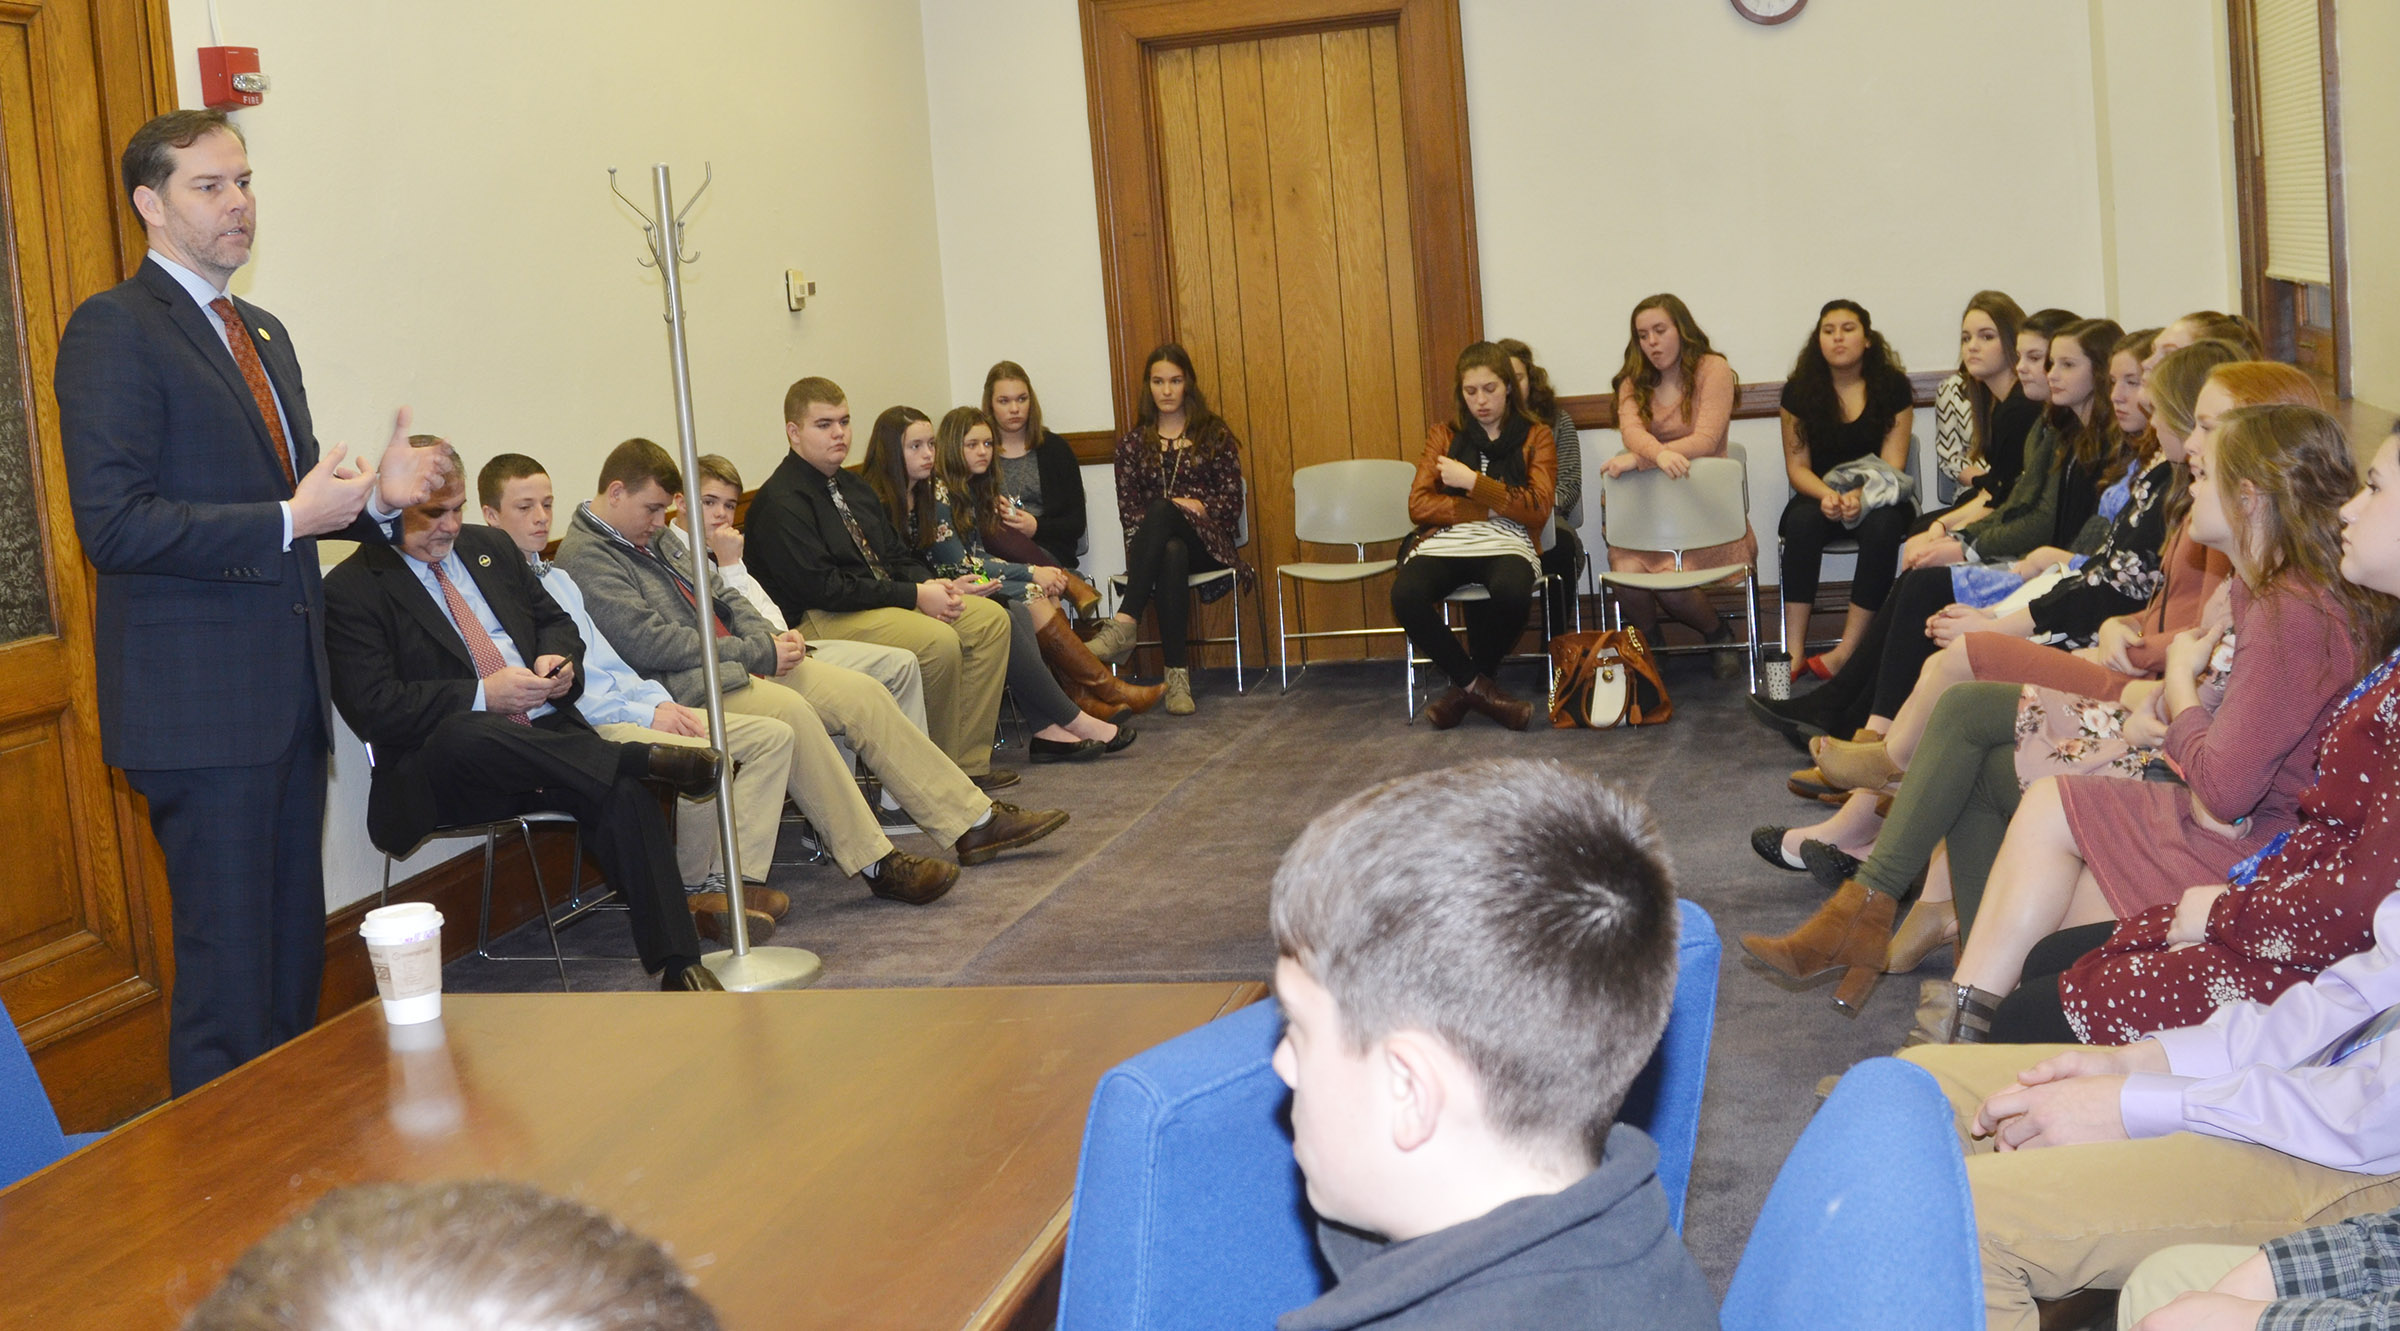 State Sen. Max Wise, R-Campbellsville, talks to CMS leadership students.